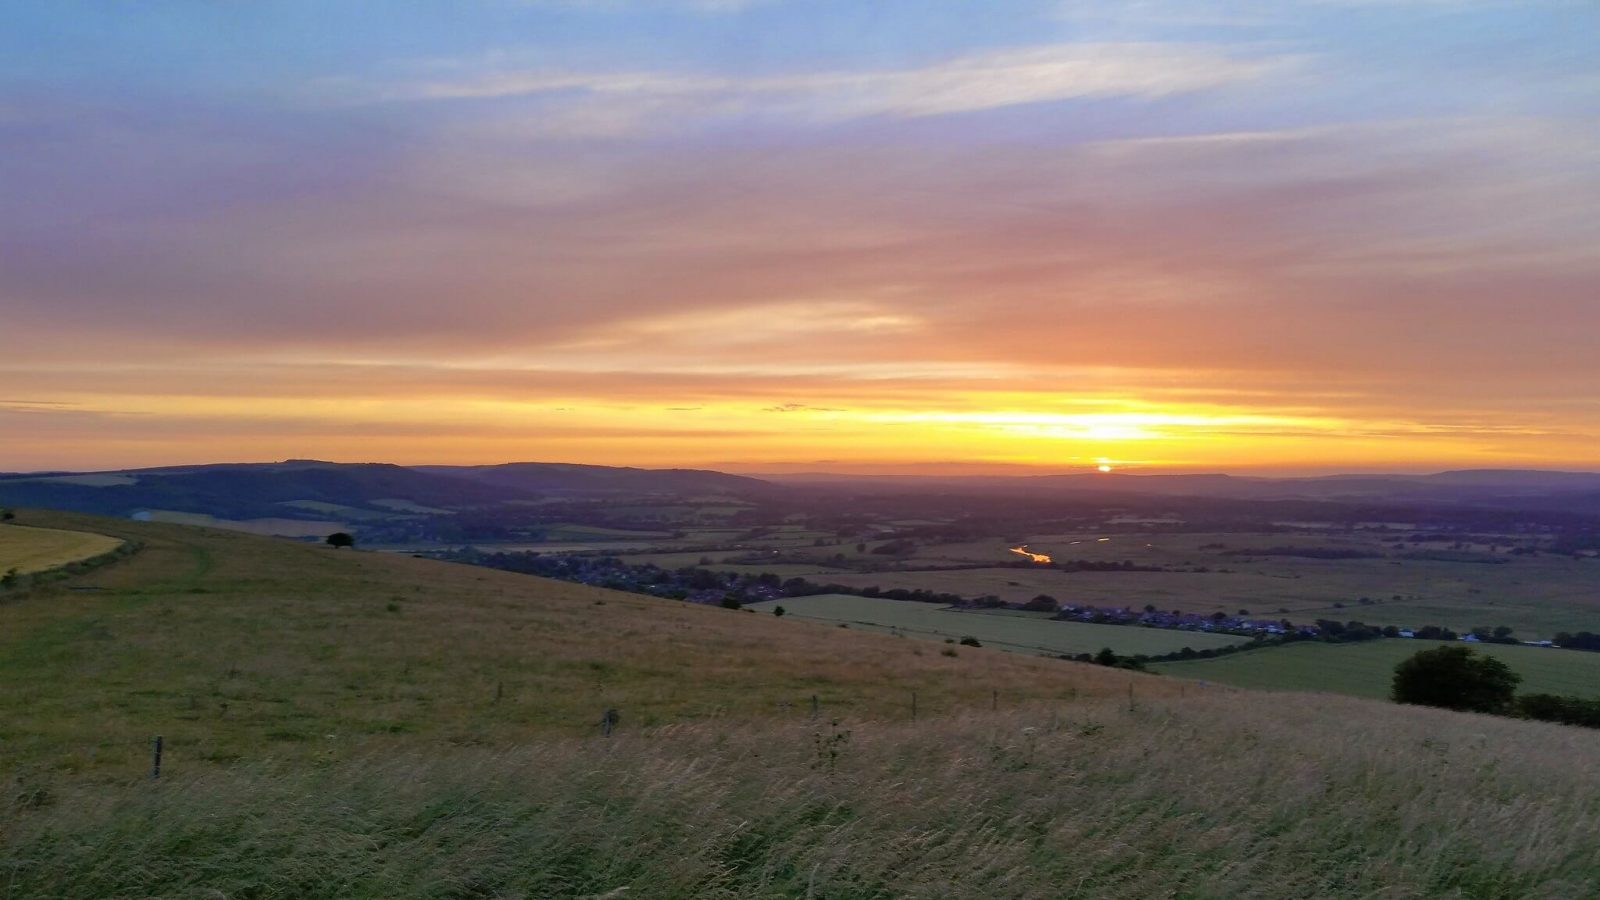 South Downs open spaces in west sussex